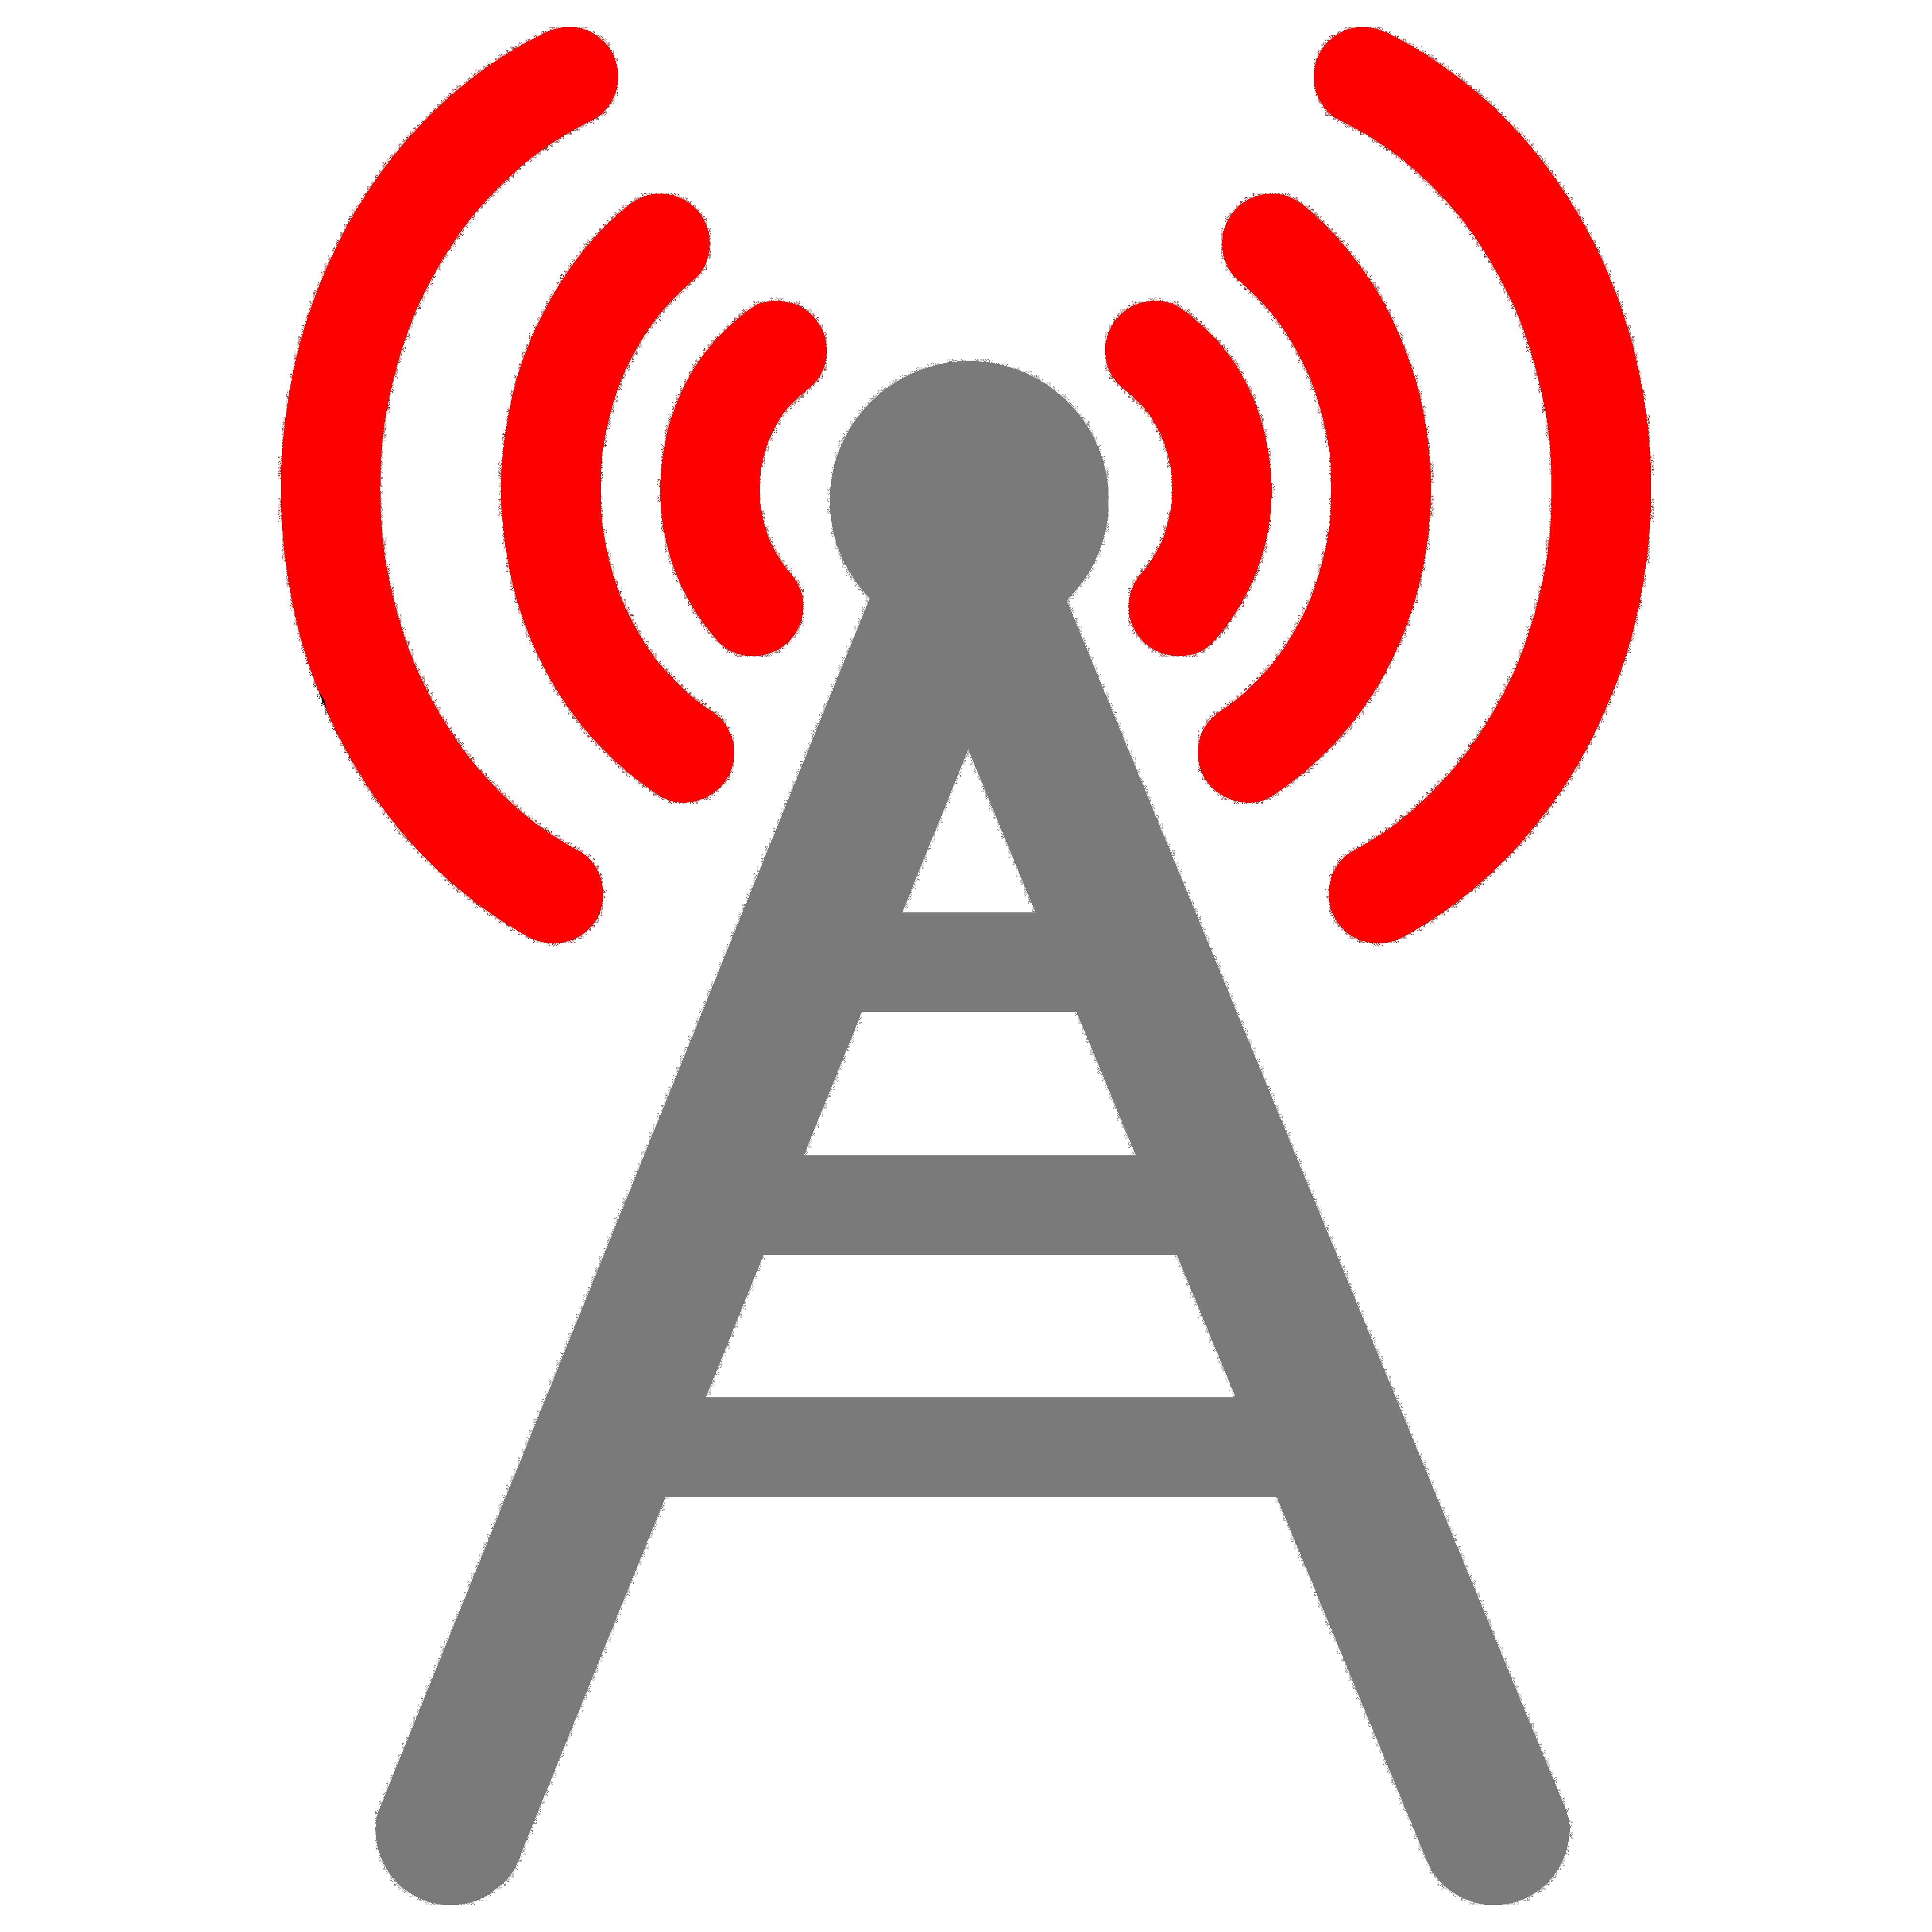 Gray and red cell/radio tower icon